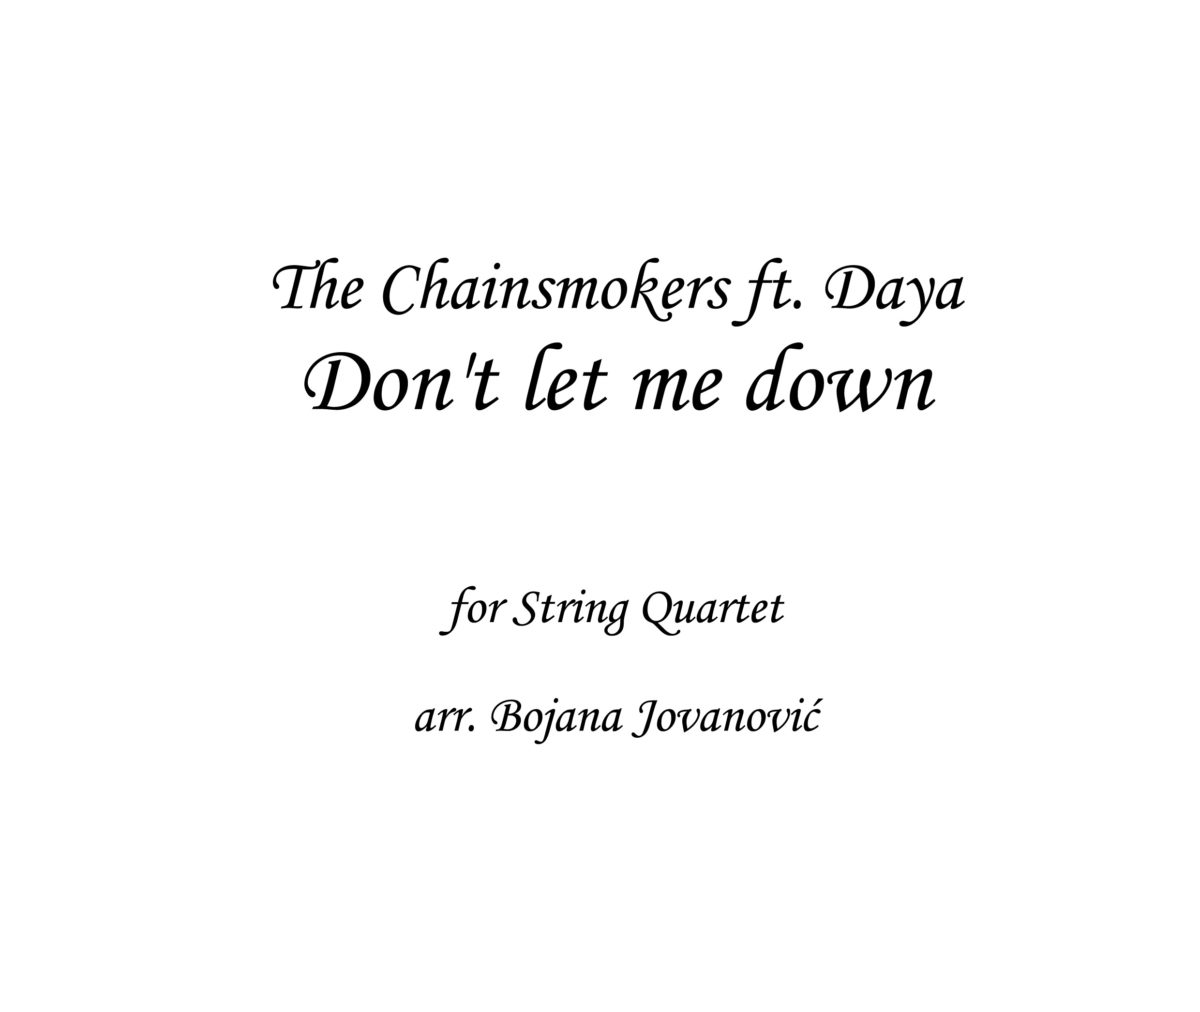 Don't let me down The Chainsmokers Sheet music